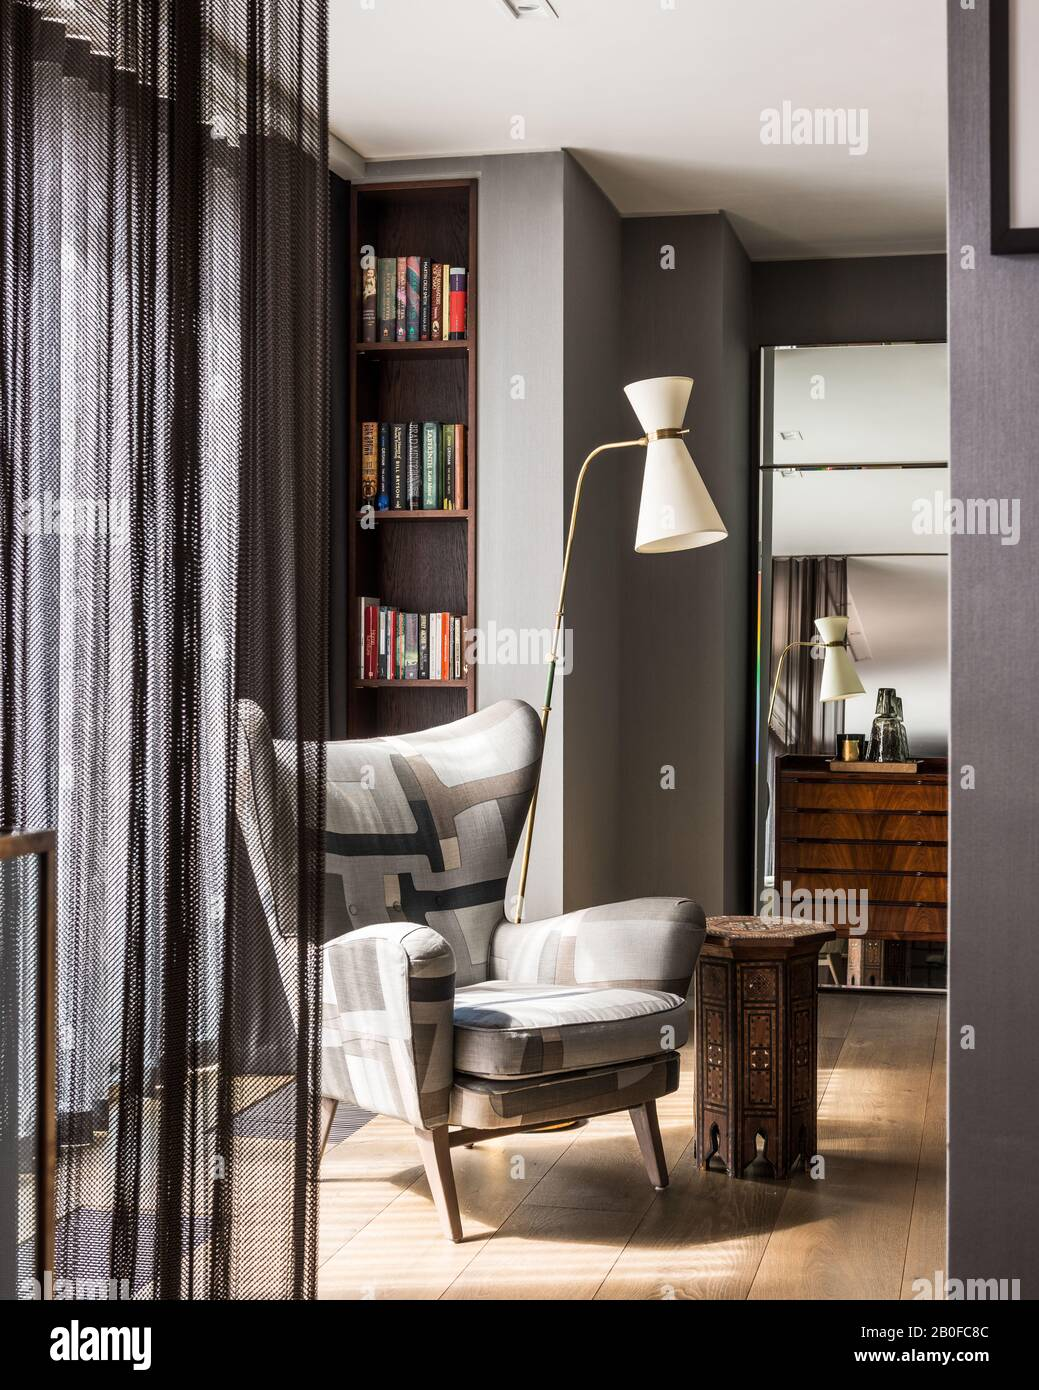 Diablo Modernist floor lamp and upholstered chair in bedroom of West London apartment Stock Photo